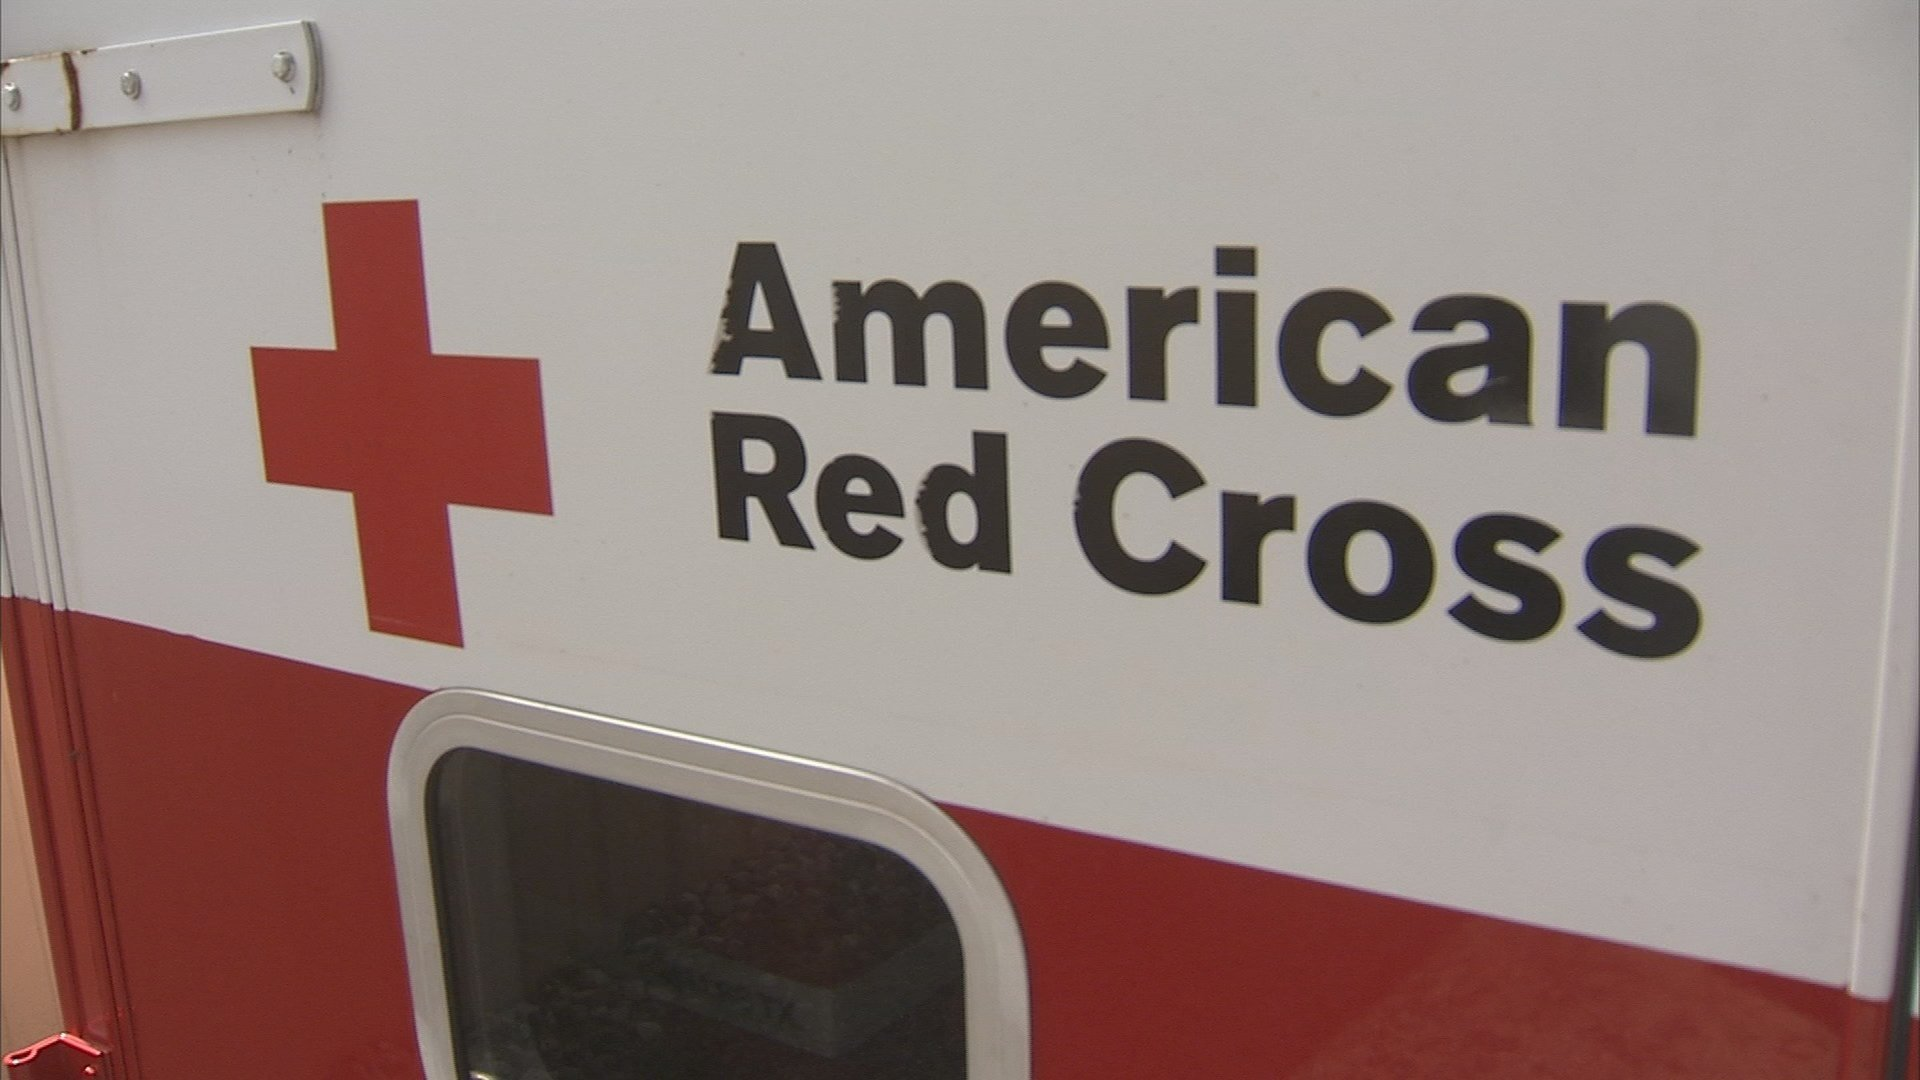 Red Cross mobilizes to help victims of Hurricane Harvey